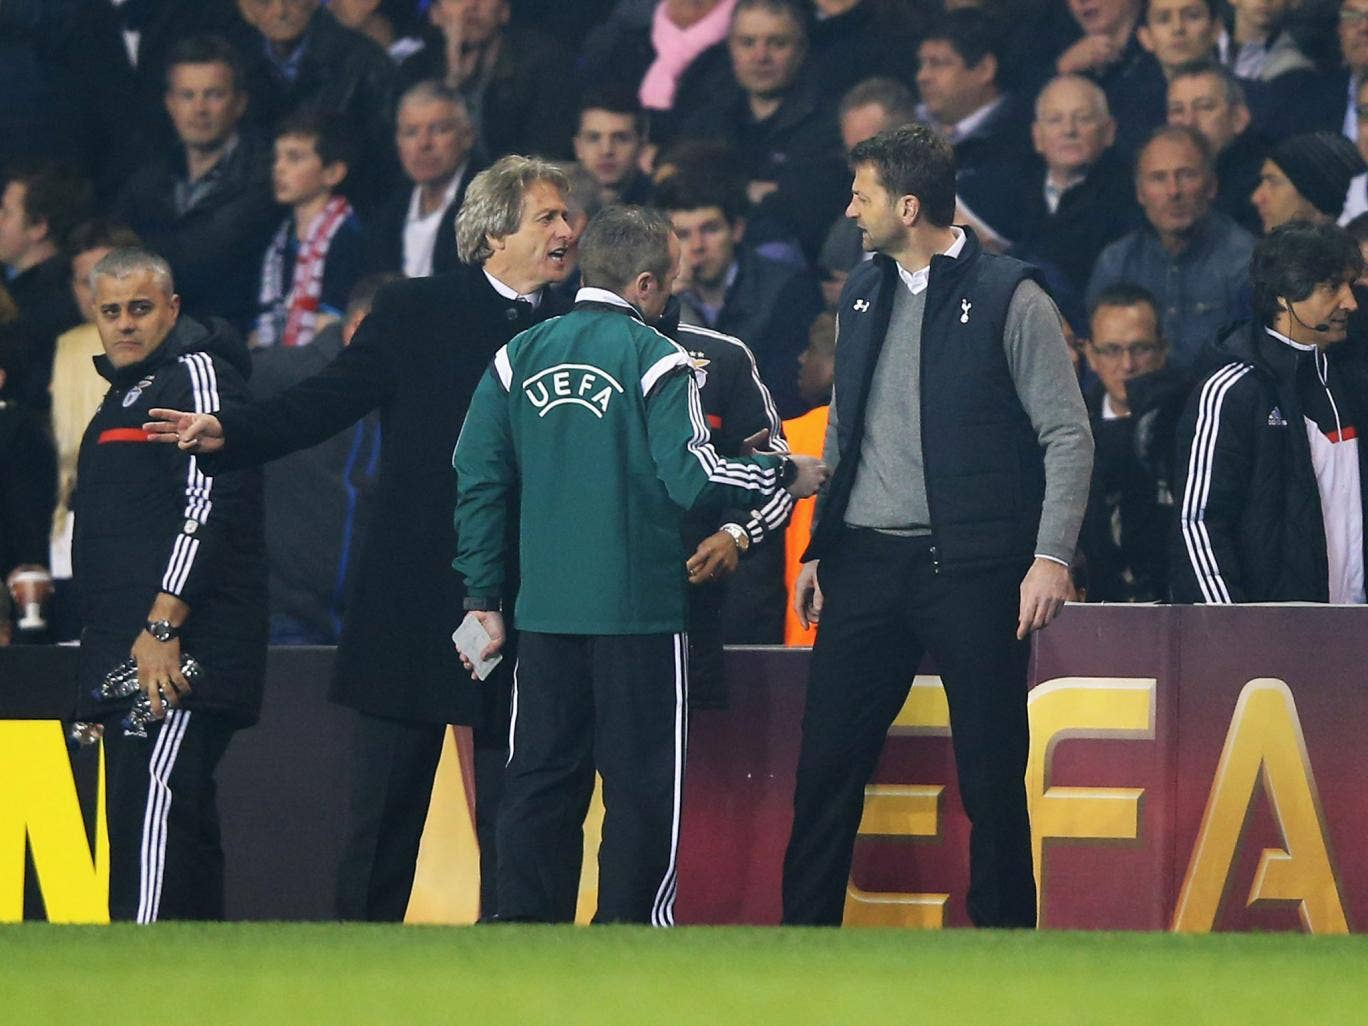 Tim Sherwood manager of Tottenham Hotspur argues with Jorge Jesus manager of Benfica